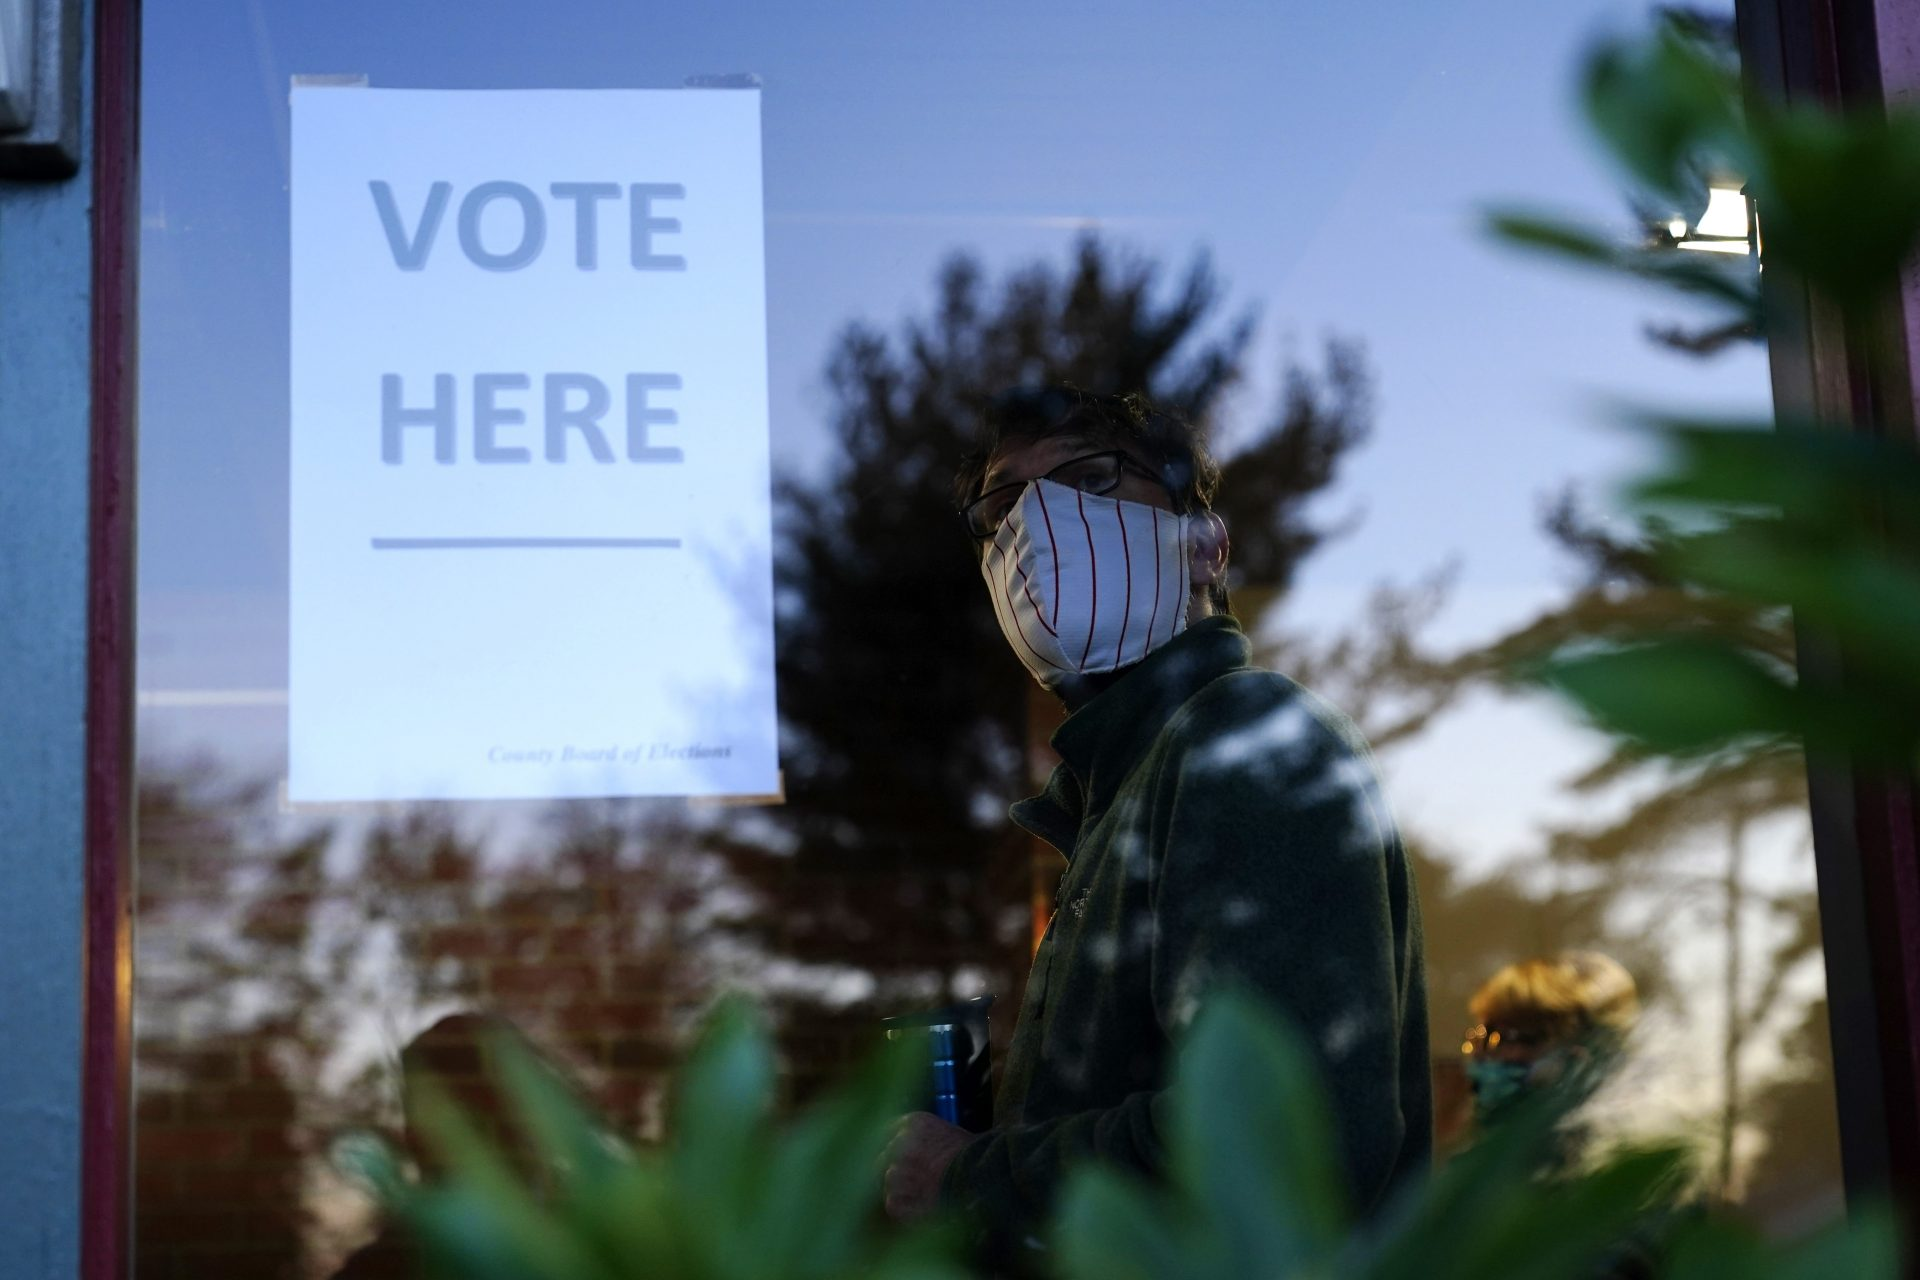 A voter lines up in a polling place to cast a ballot for the 2020 general election in the United States, Tuesday, Nov. 3, 2020, in Springfield, Pa.